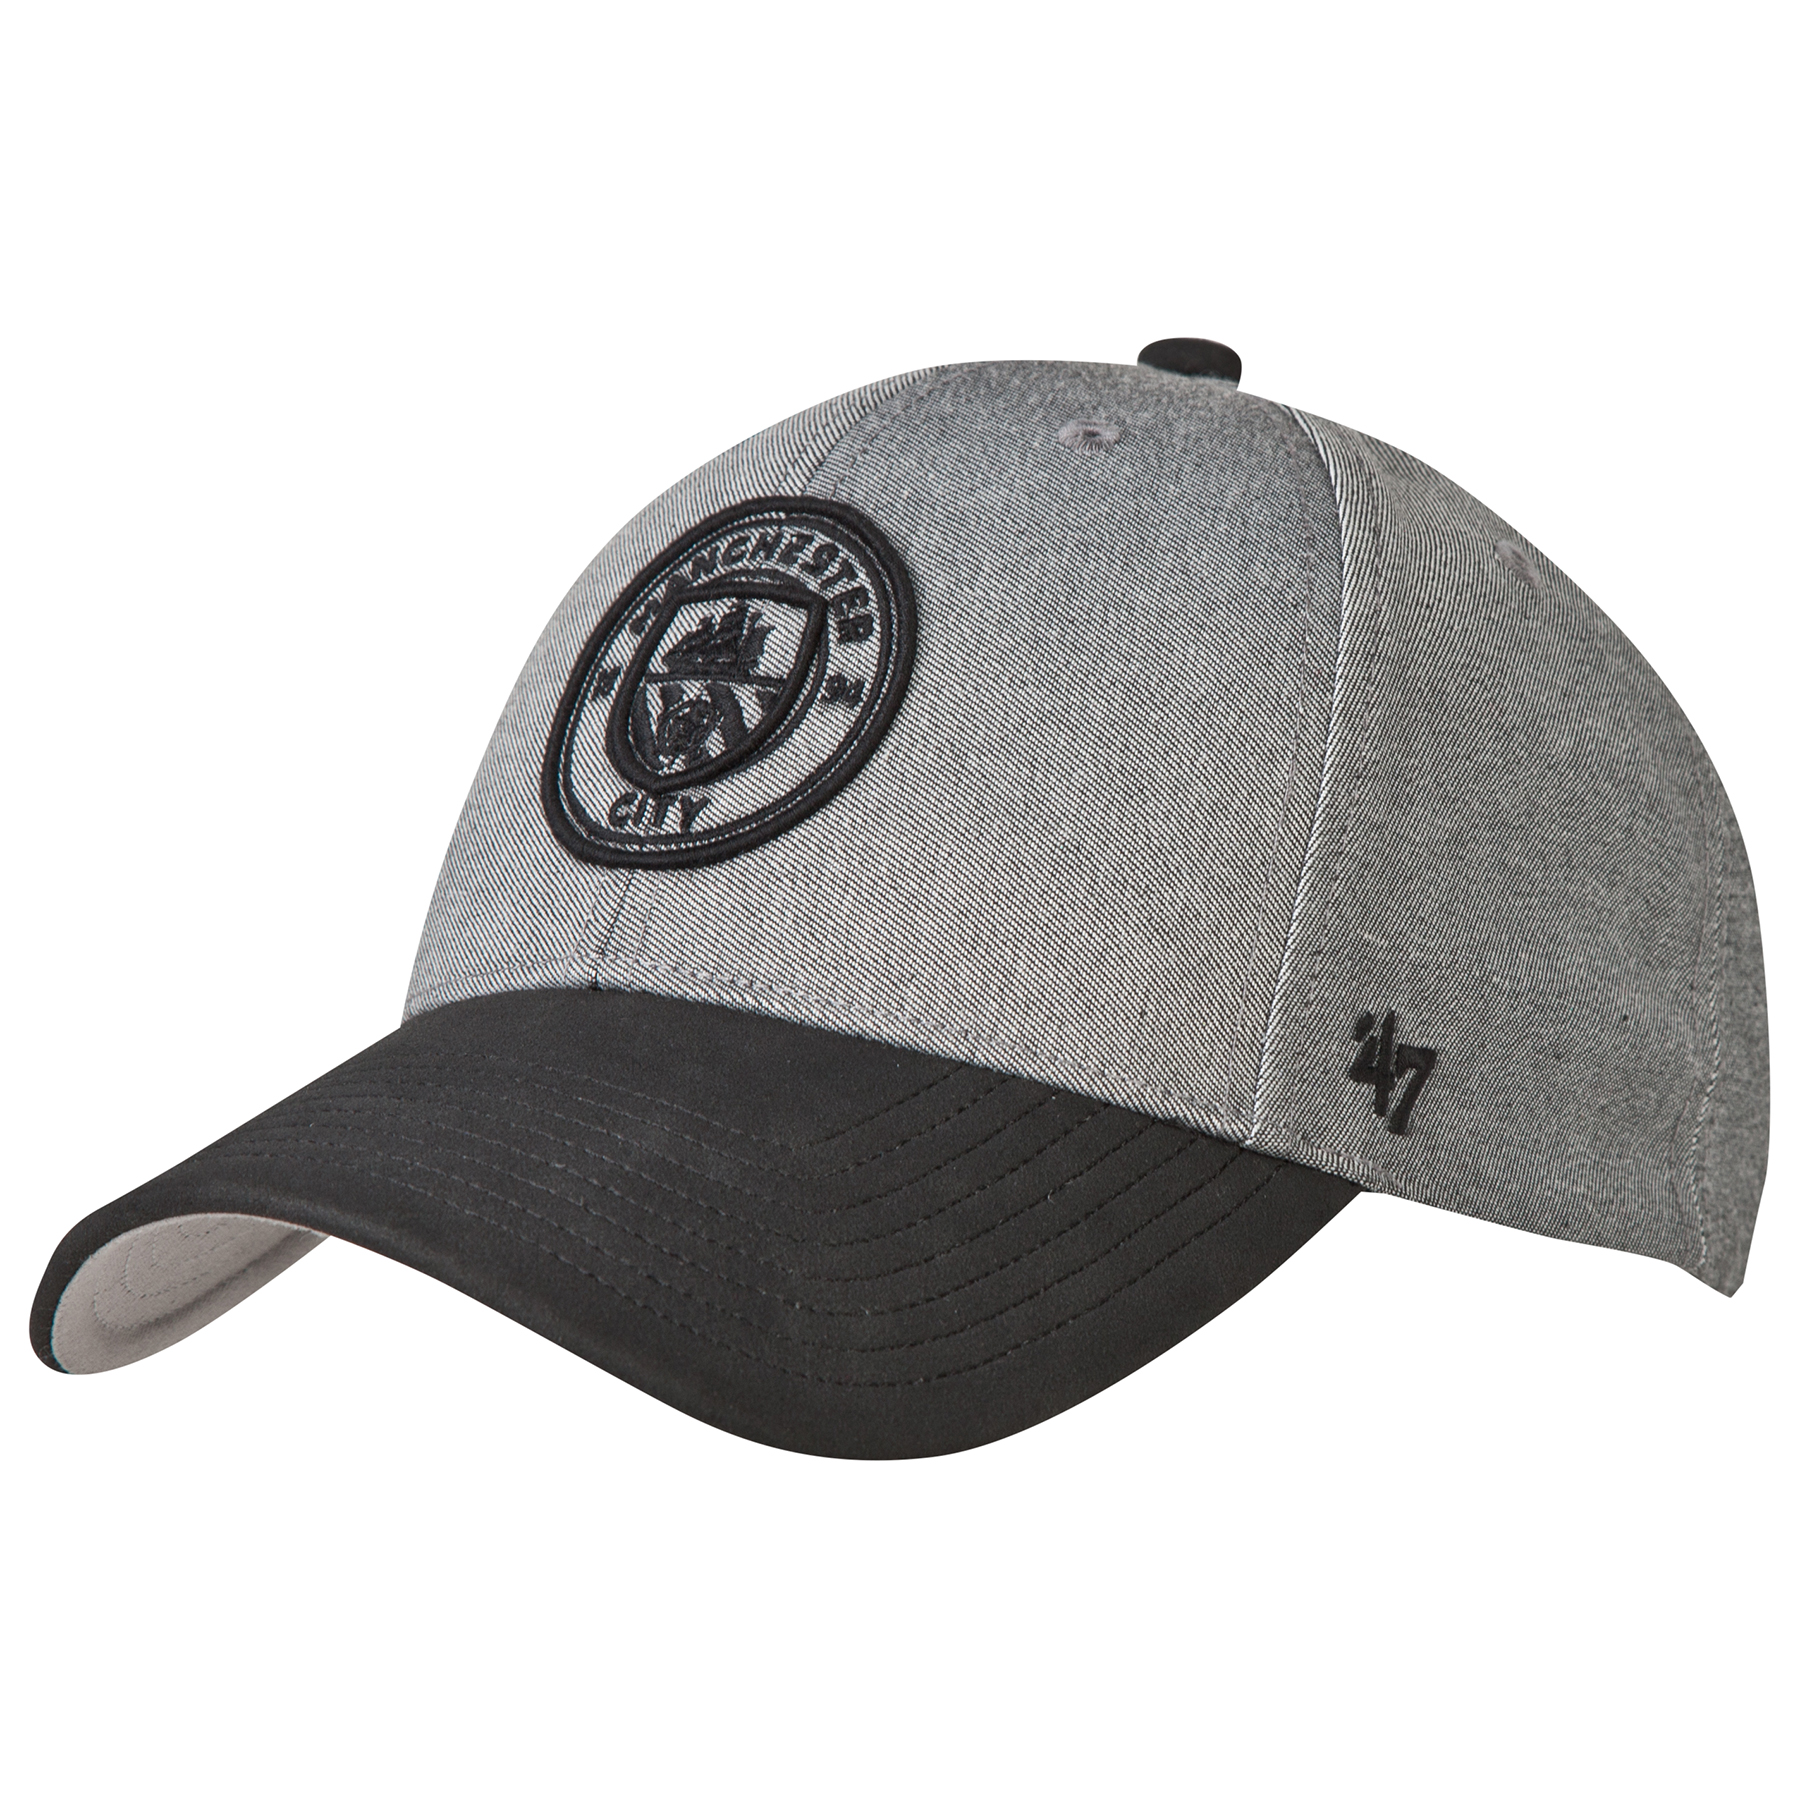 Manchester City 47 MVP Cap - Grey/Black